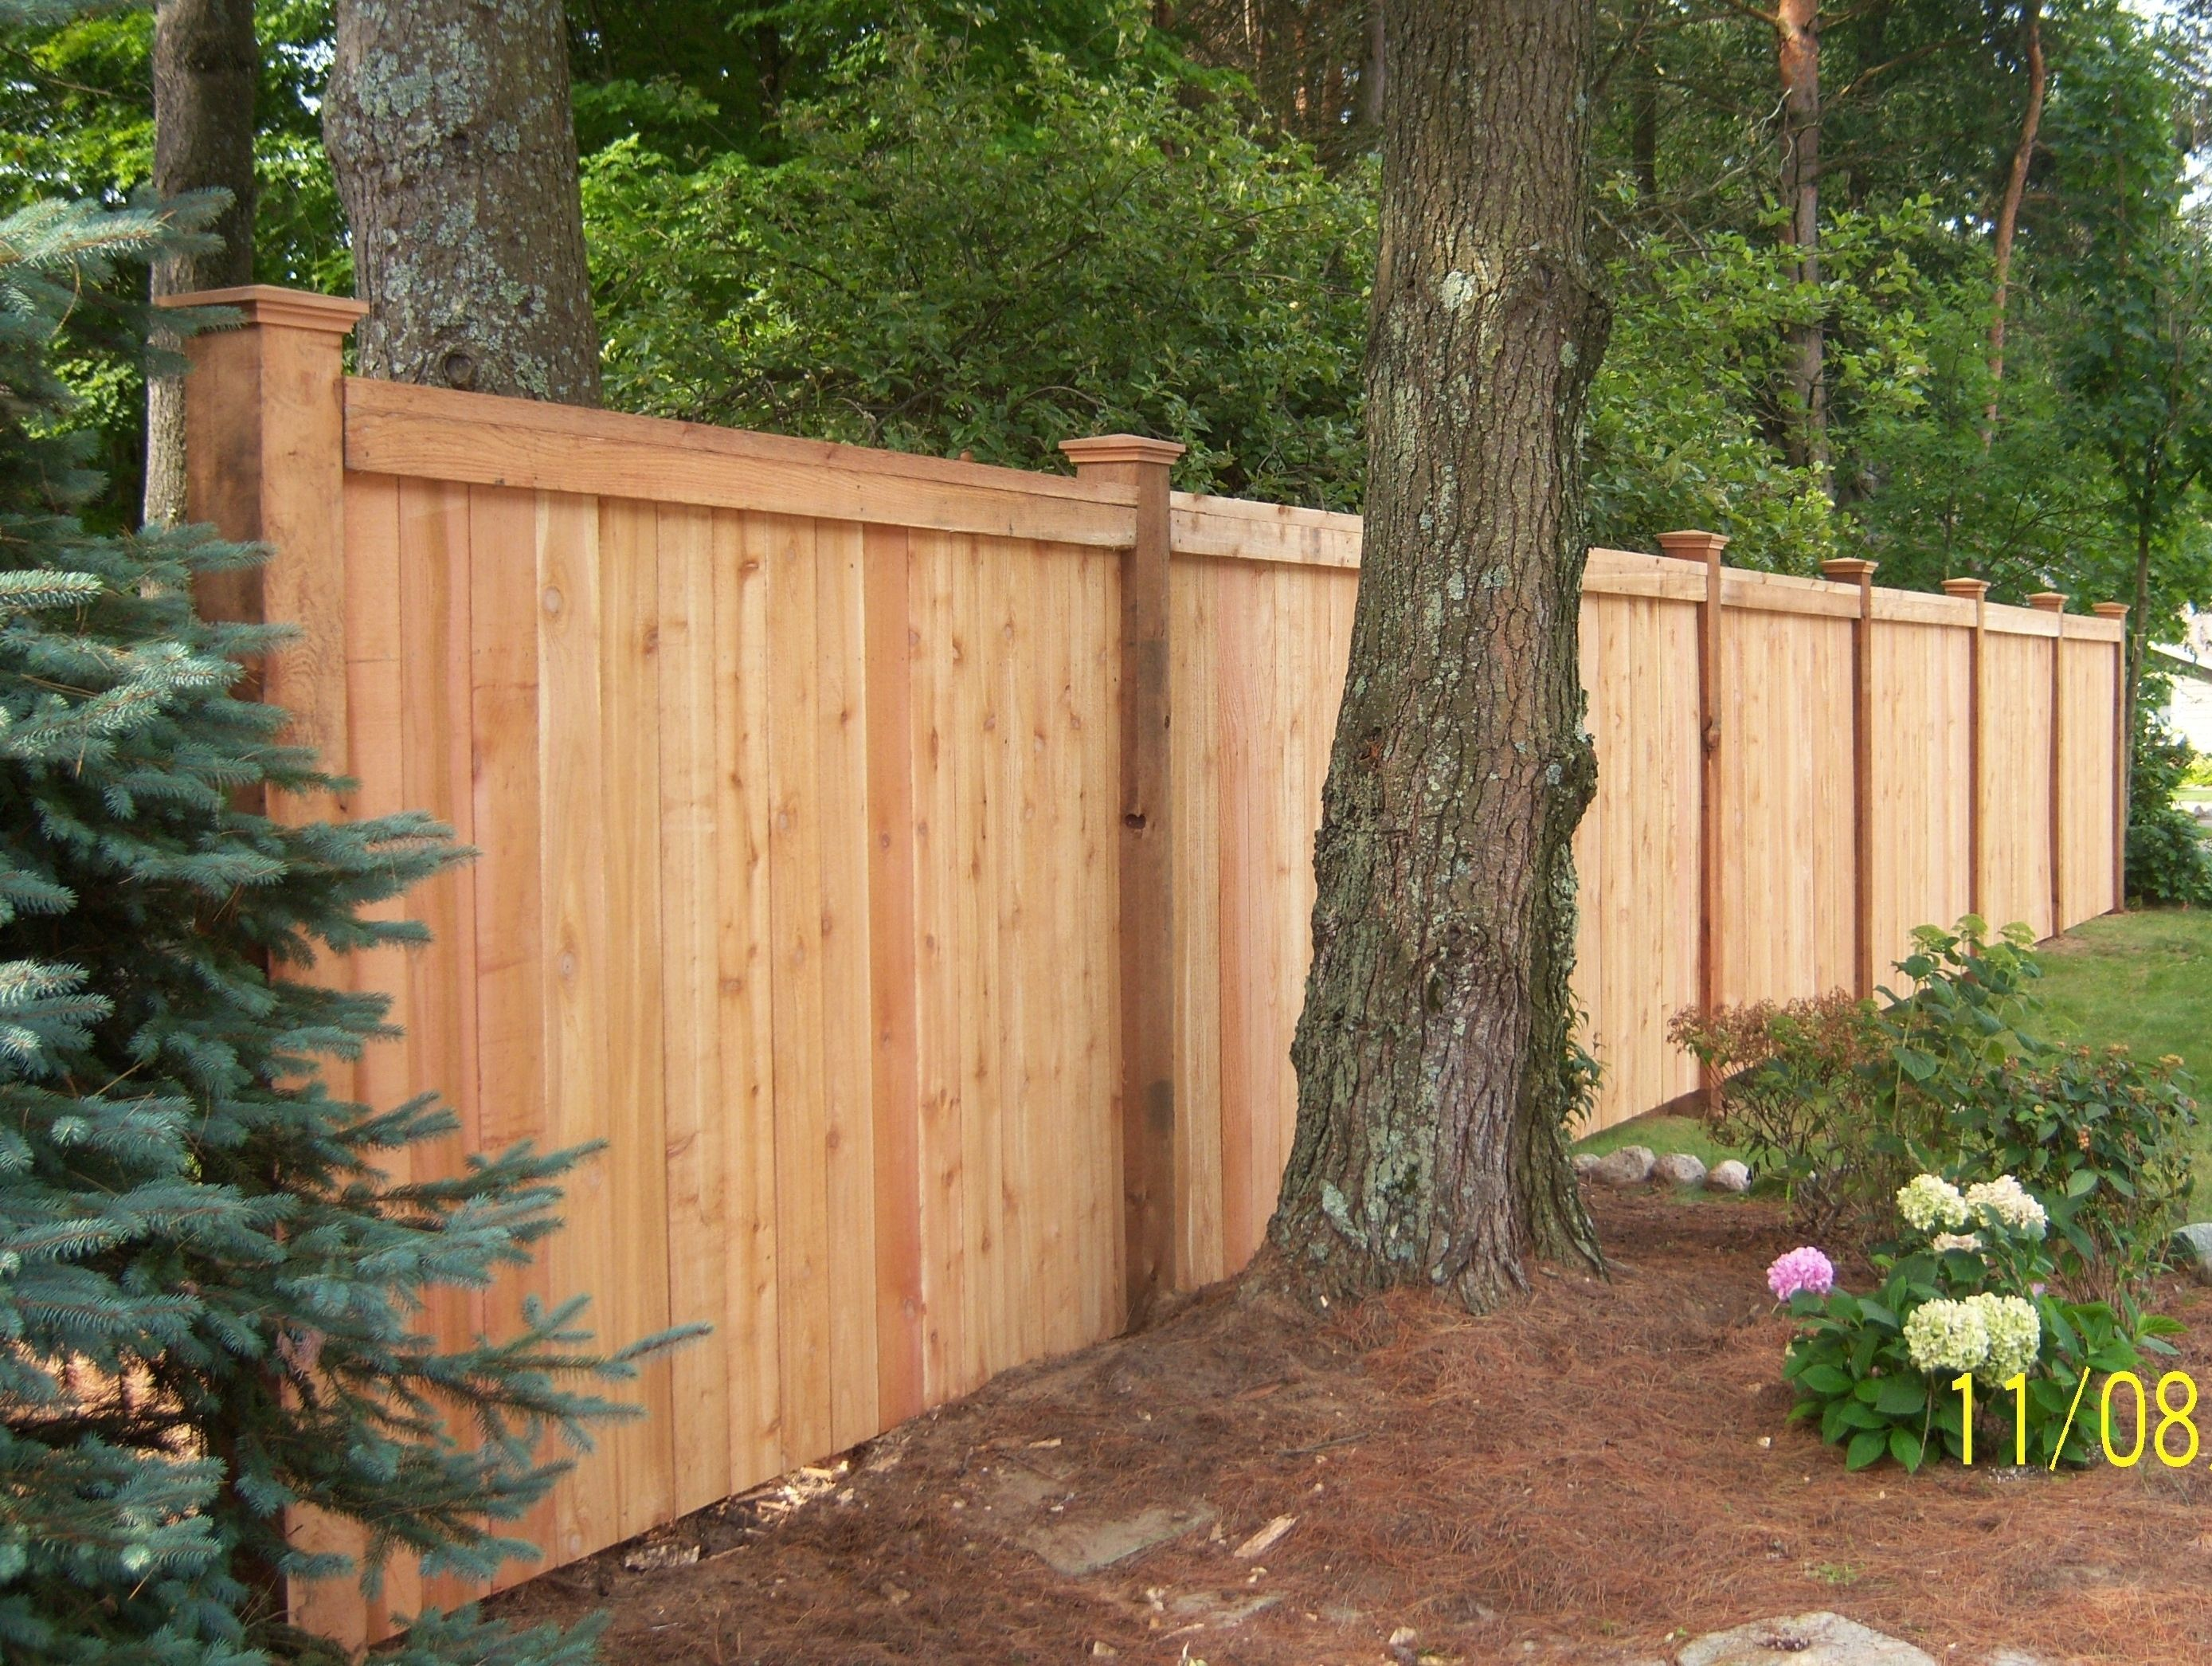 Custom wood privacy fence garden ideas pinterest for Garden fencing ideas privacy